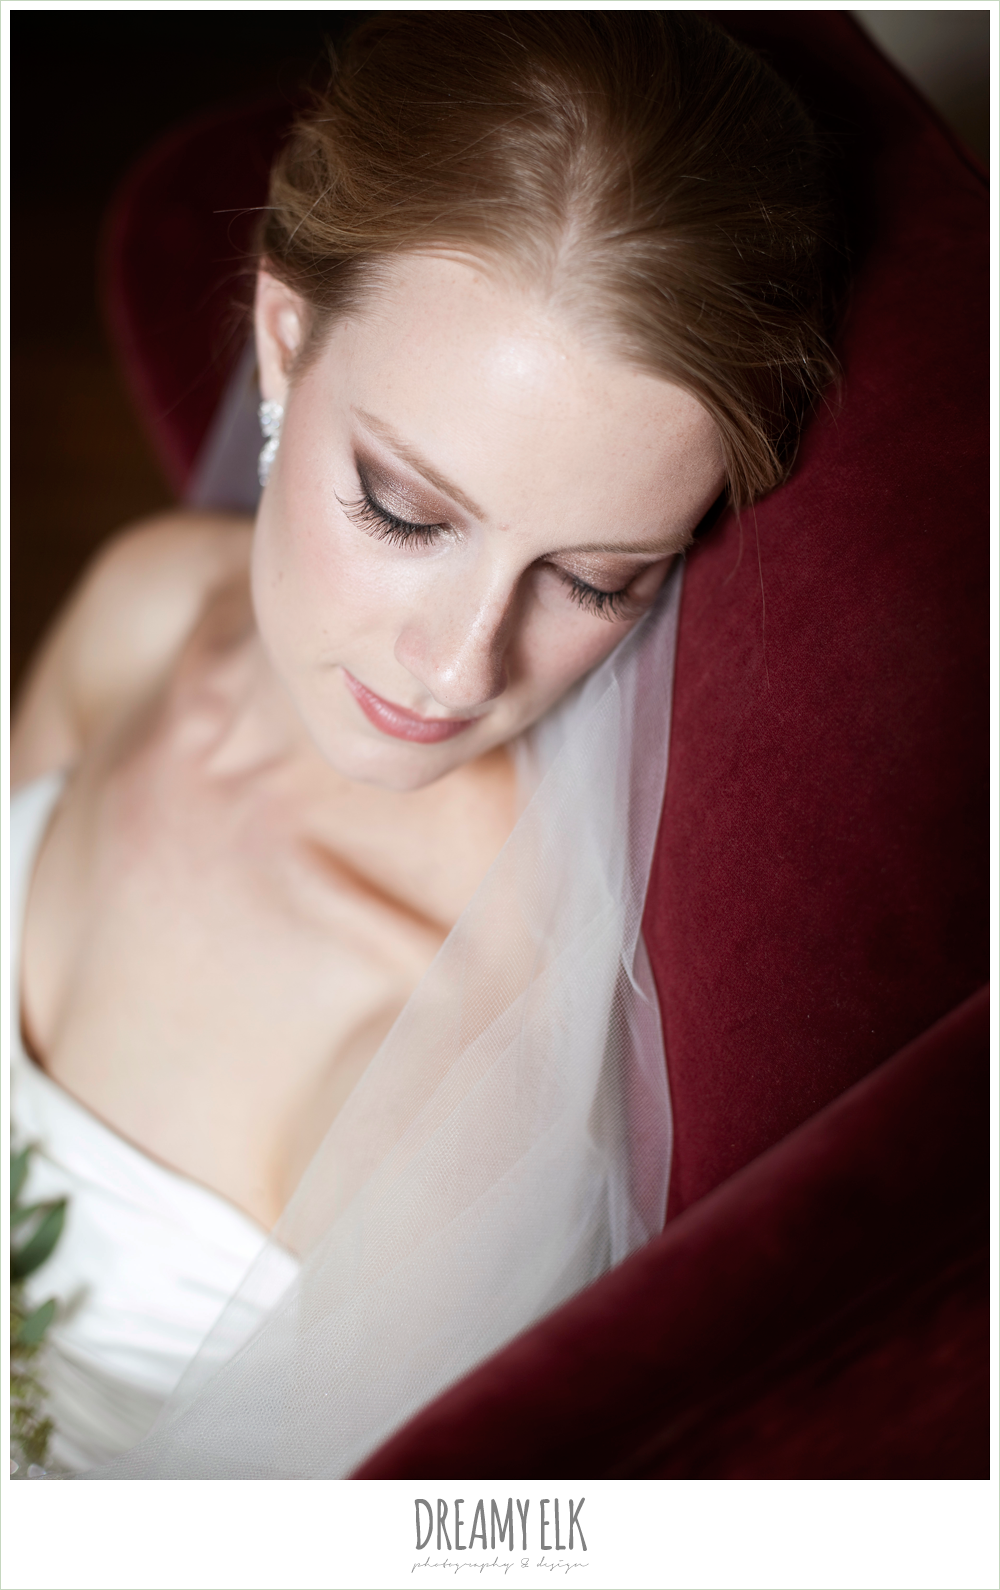 indoor bridal photo, dreamy elk photography and design